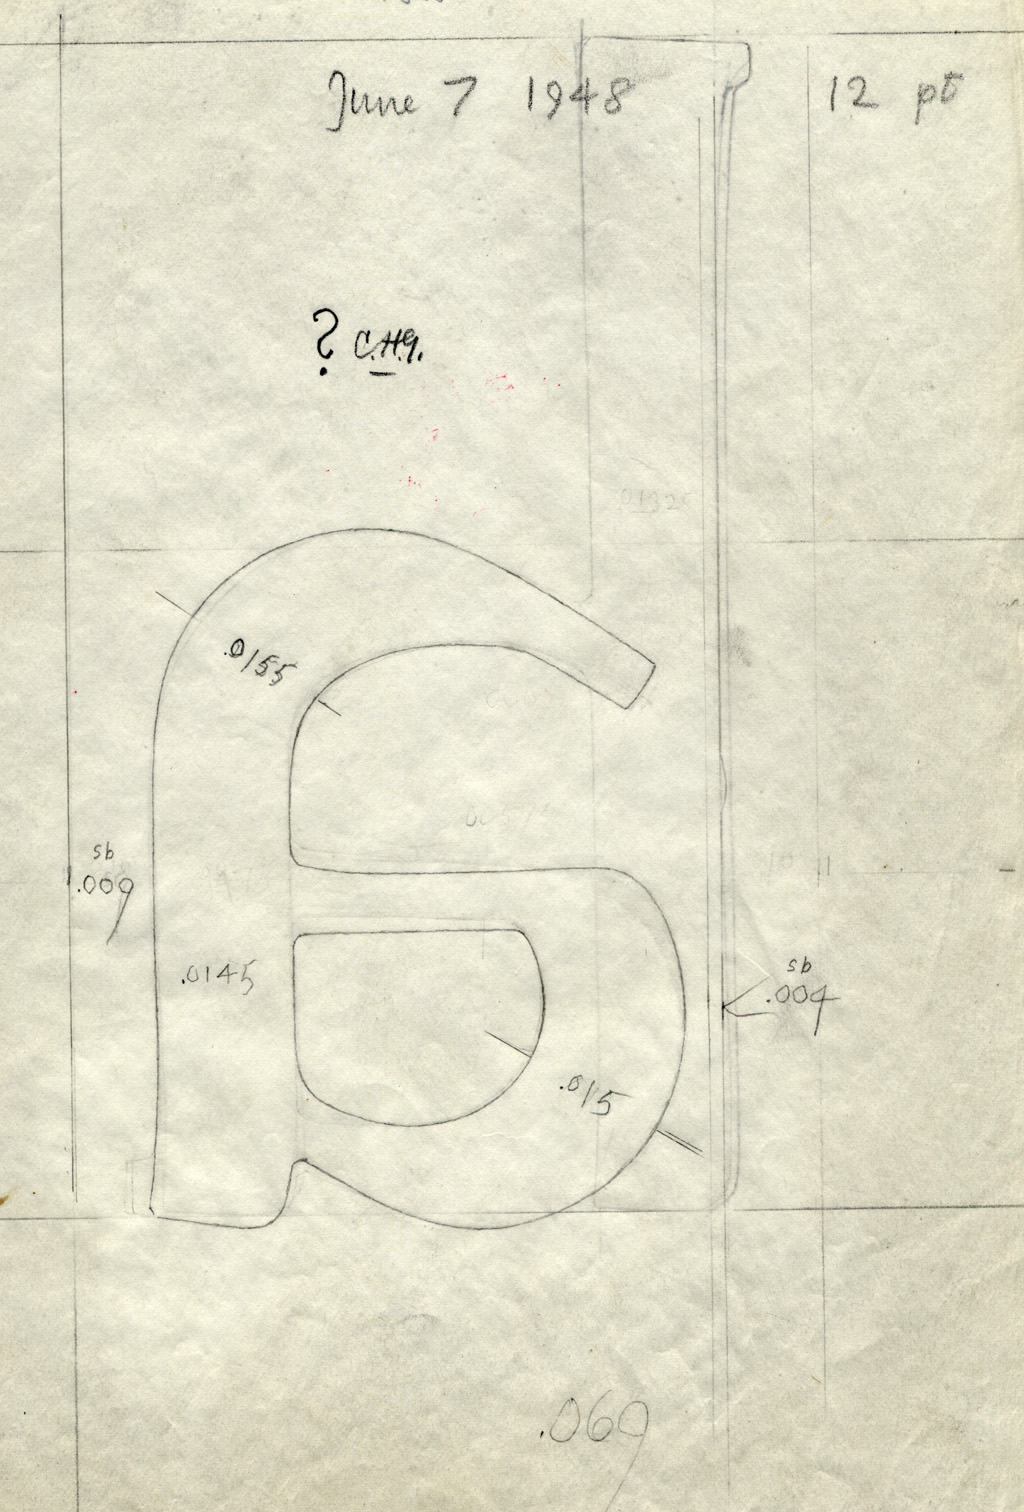 Drawing of a for Alexandria. Dated June 7, 1948.